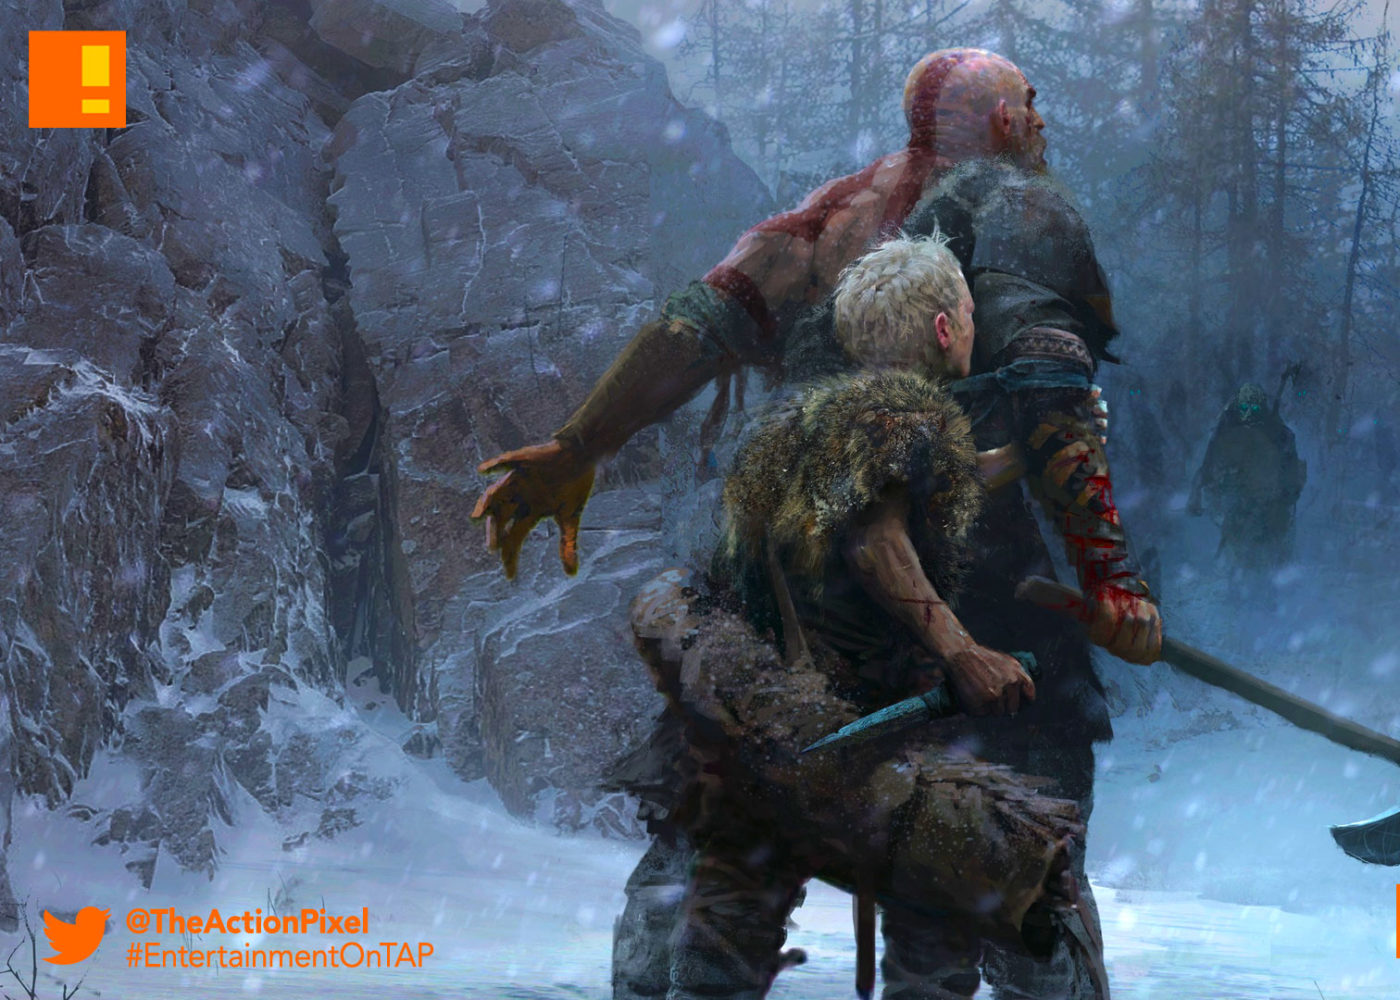 kratos, god of war, the action pixel, entertainment on tap, god of war, kratos, santa monica, the action pixel, norse, entertainment on tap,e3, e3 2017, electronic entertainment expo,